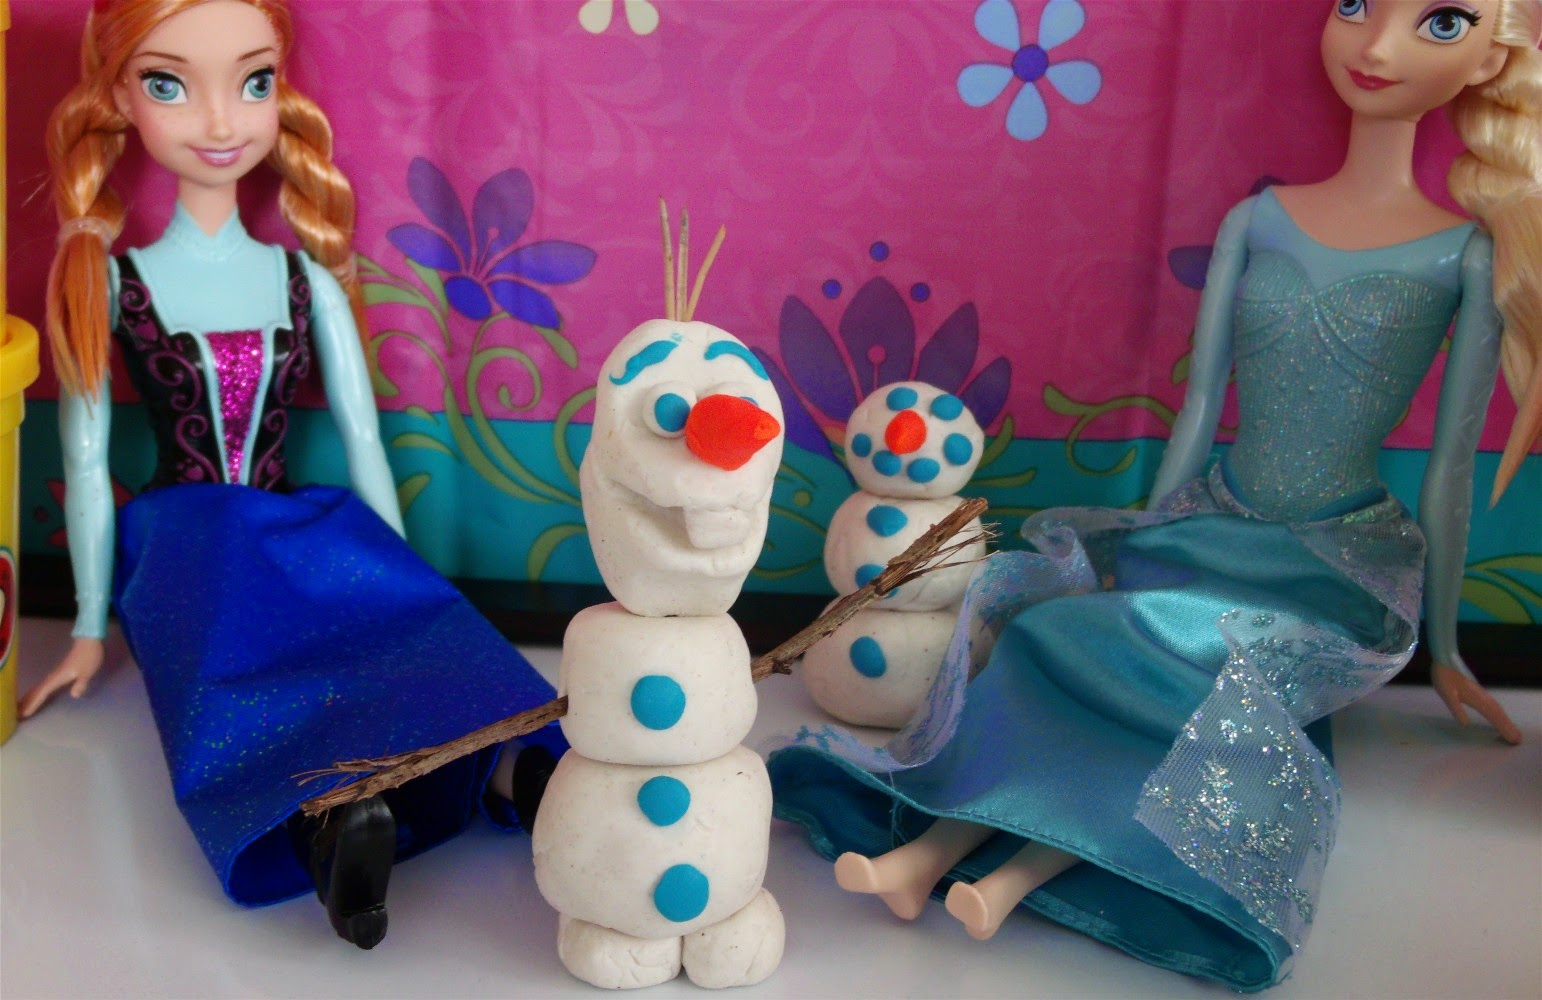 Disney Princess Elsa and Anna make Play Doh Olaf